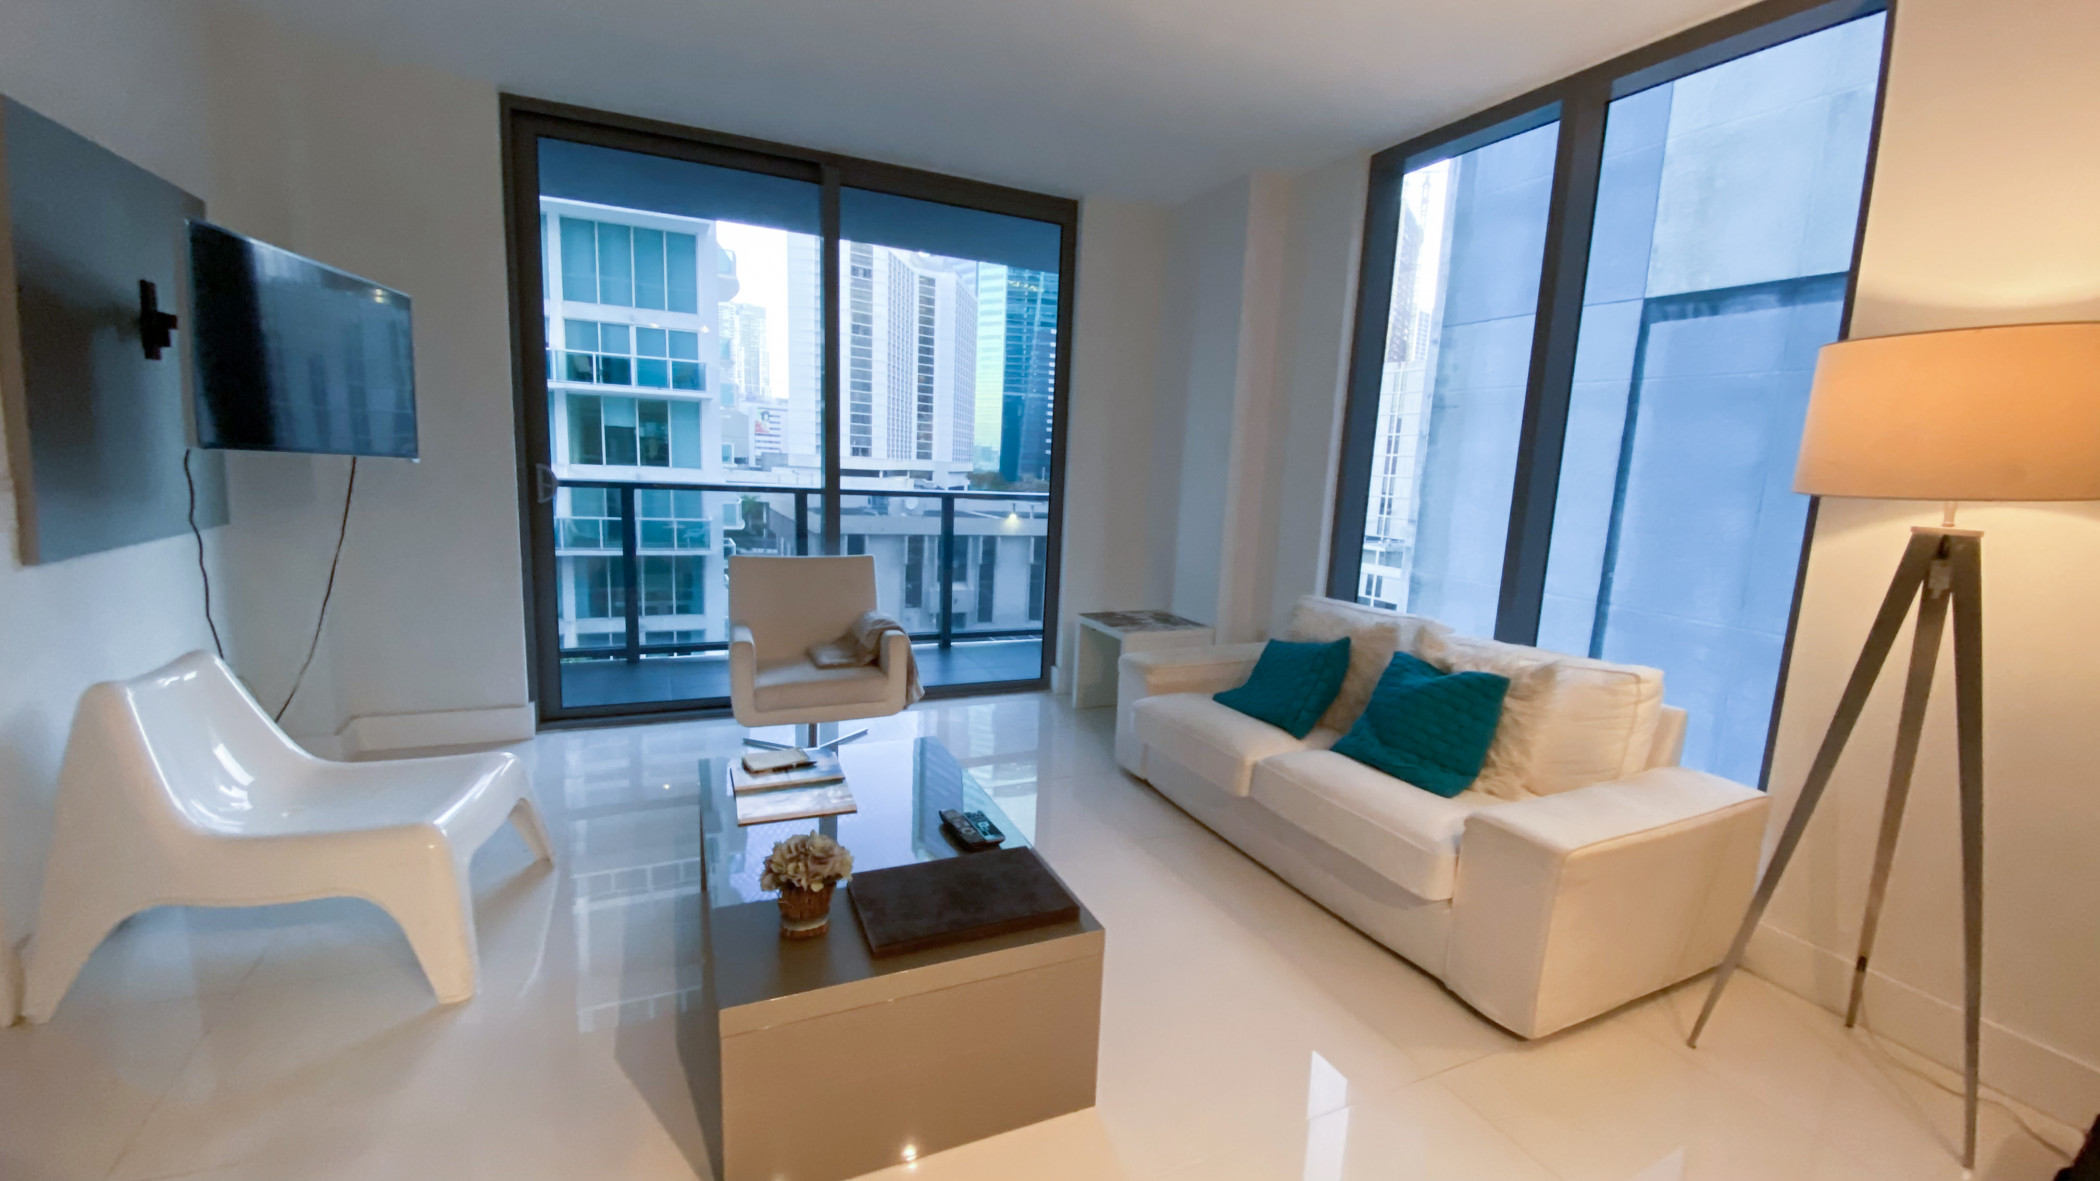 Brickell Center - Beautiful 2 bed 2 bath apartment